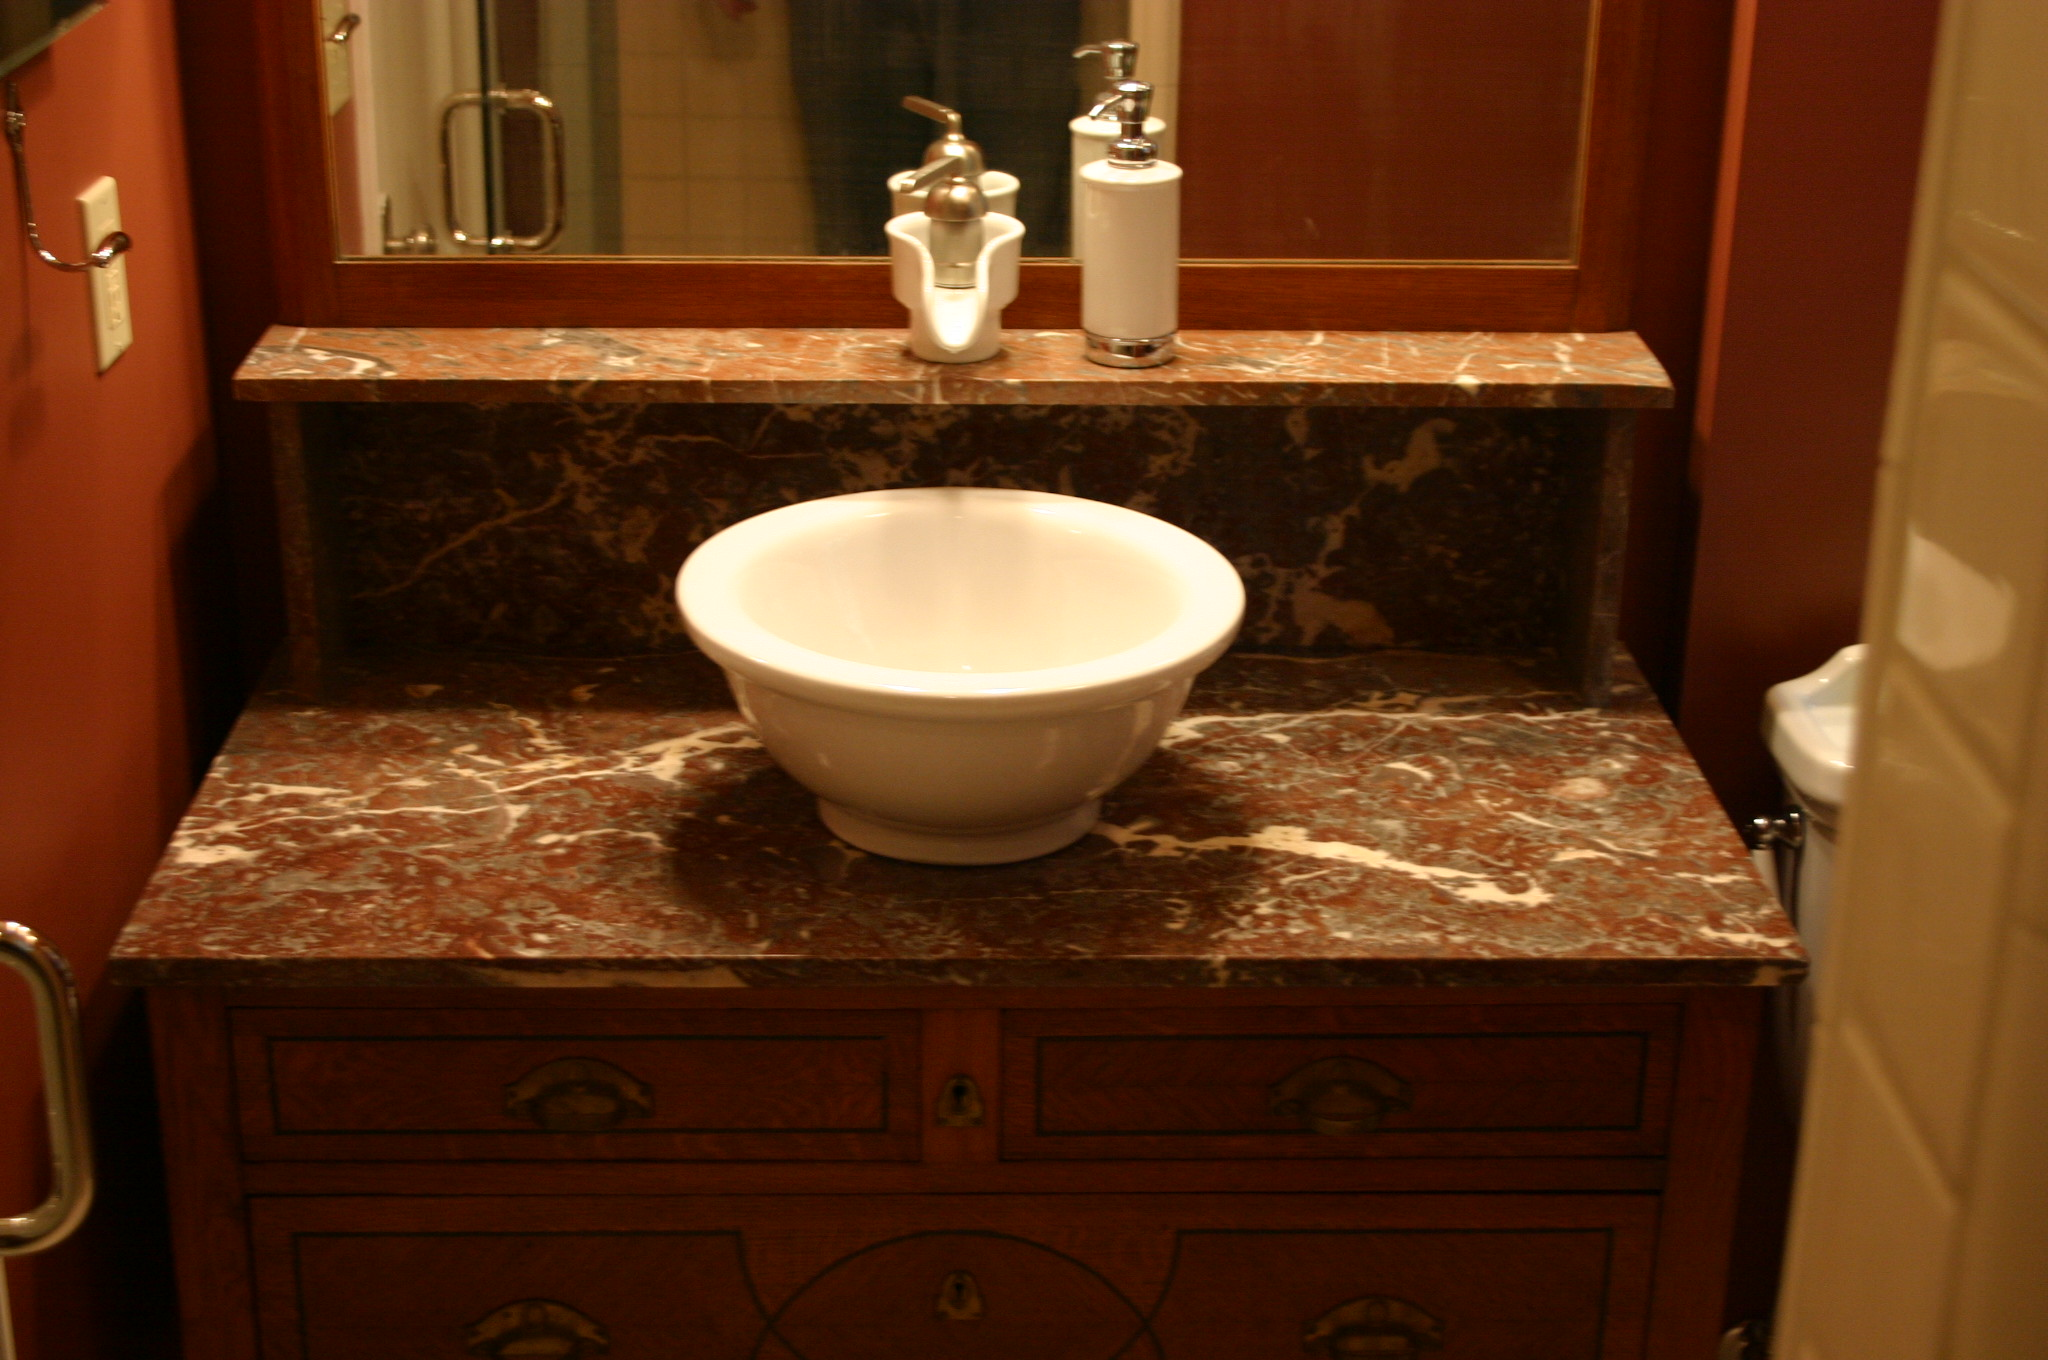 Remodel, bathroom, sink, home renovation, Portland, Kaya Construction, Kaya General Contractors, Portland Remodeler